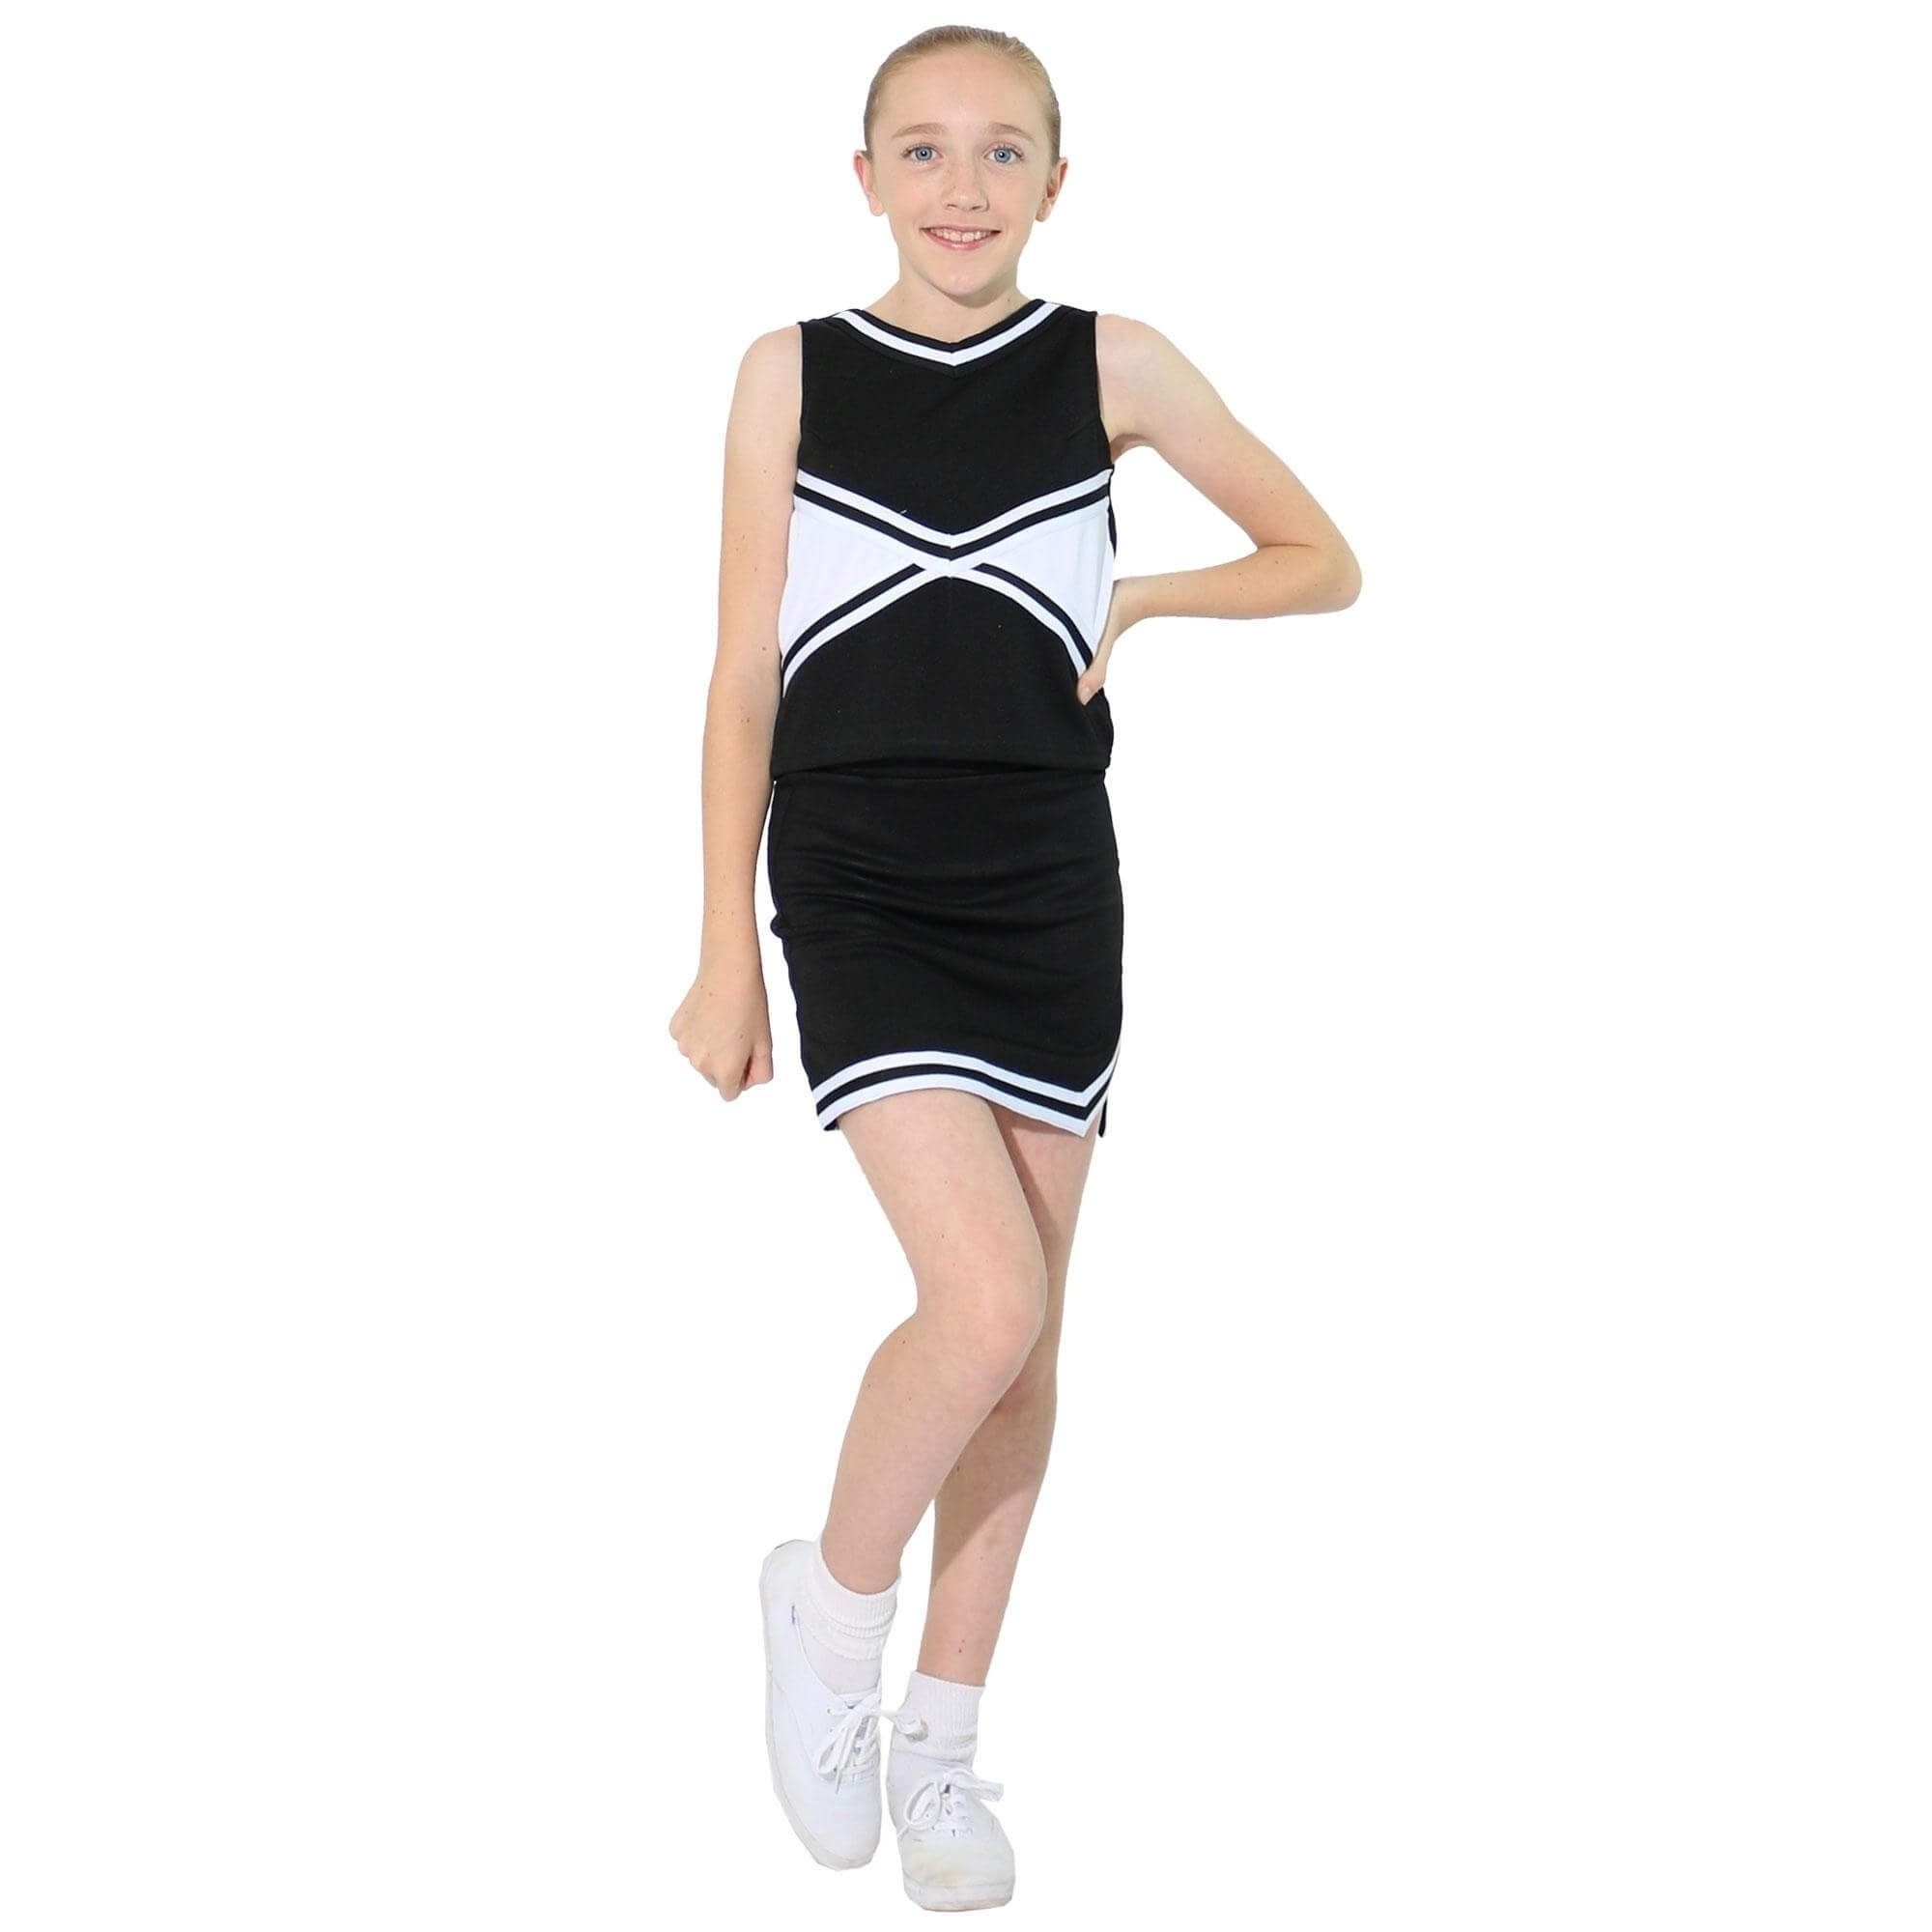 Danzcue Child 2-Color Kick Sweetheart Cheerleaders Uniform Set